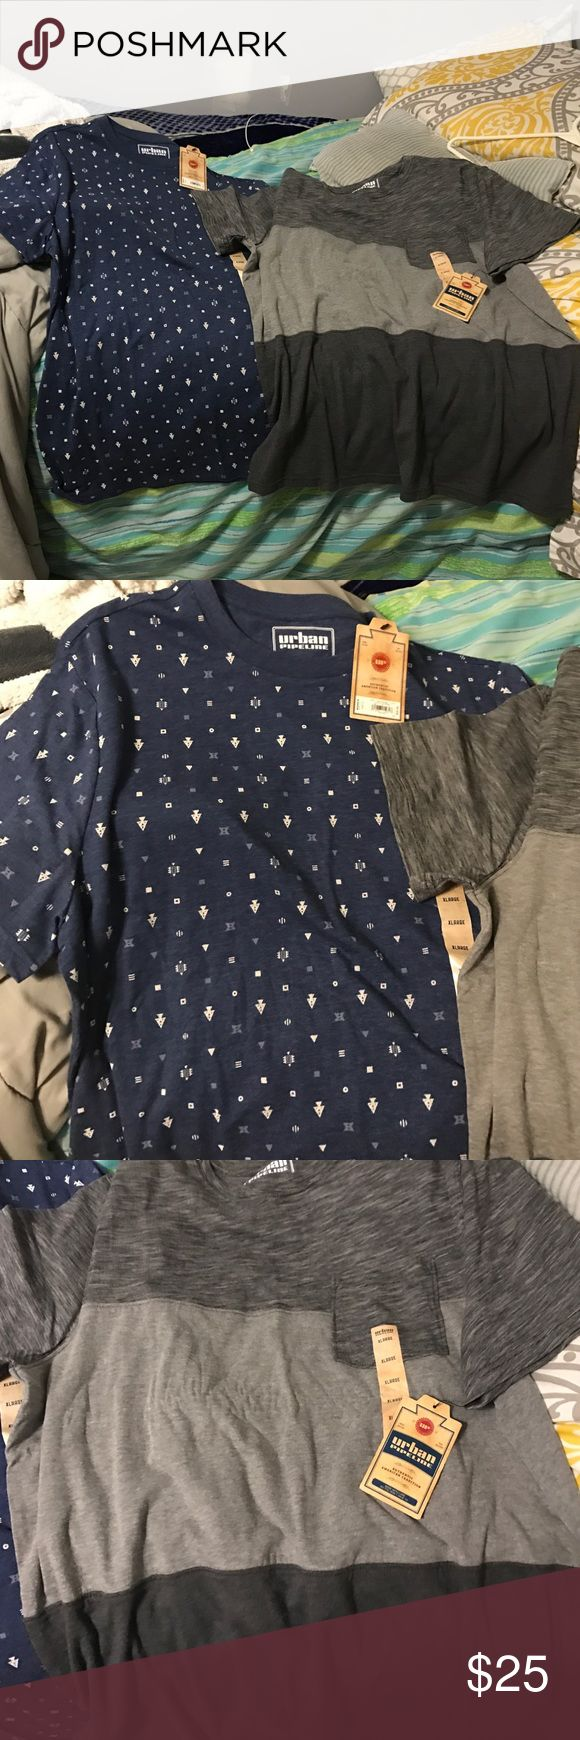 Men's shirts brand new Brand new. Both XL Tops